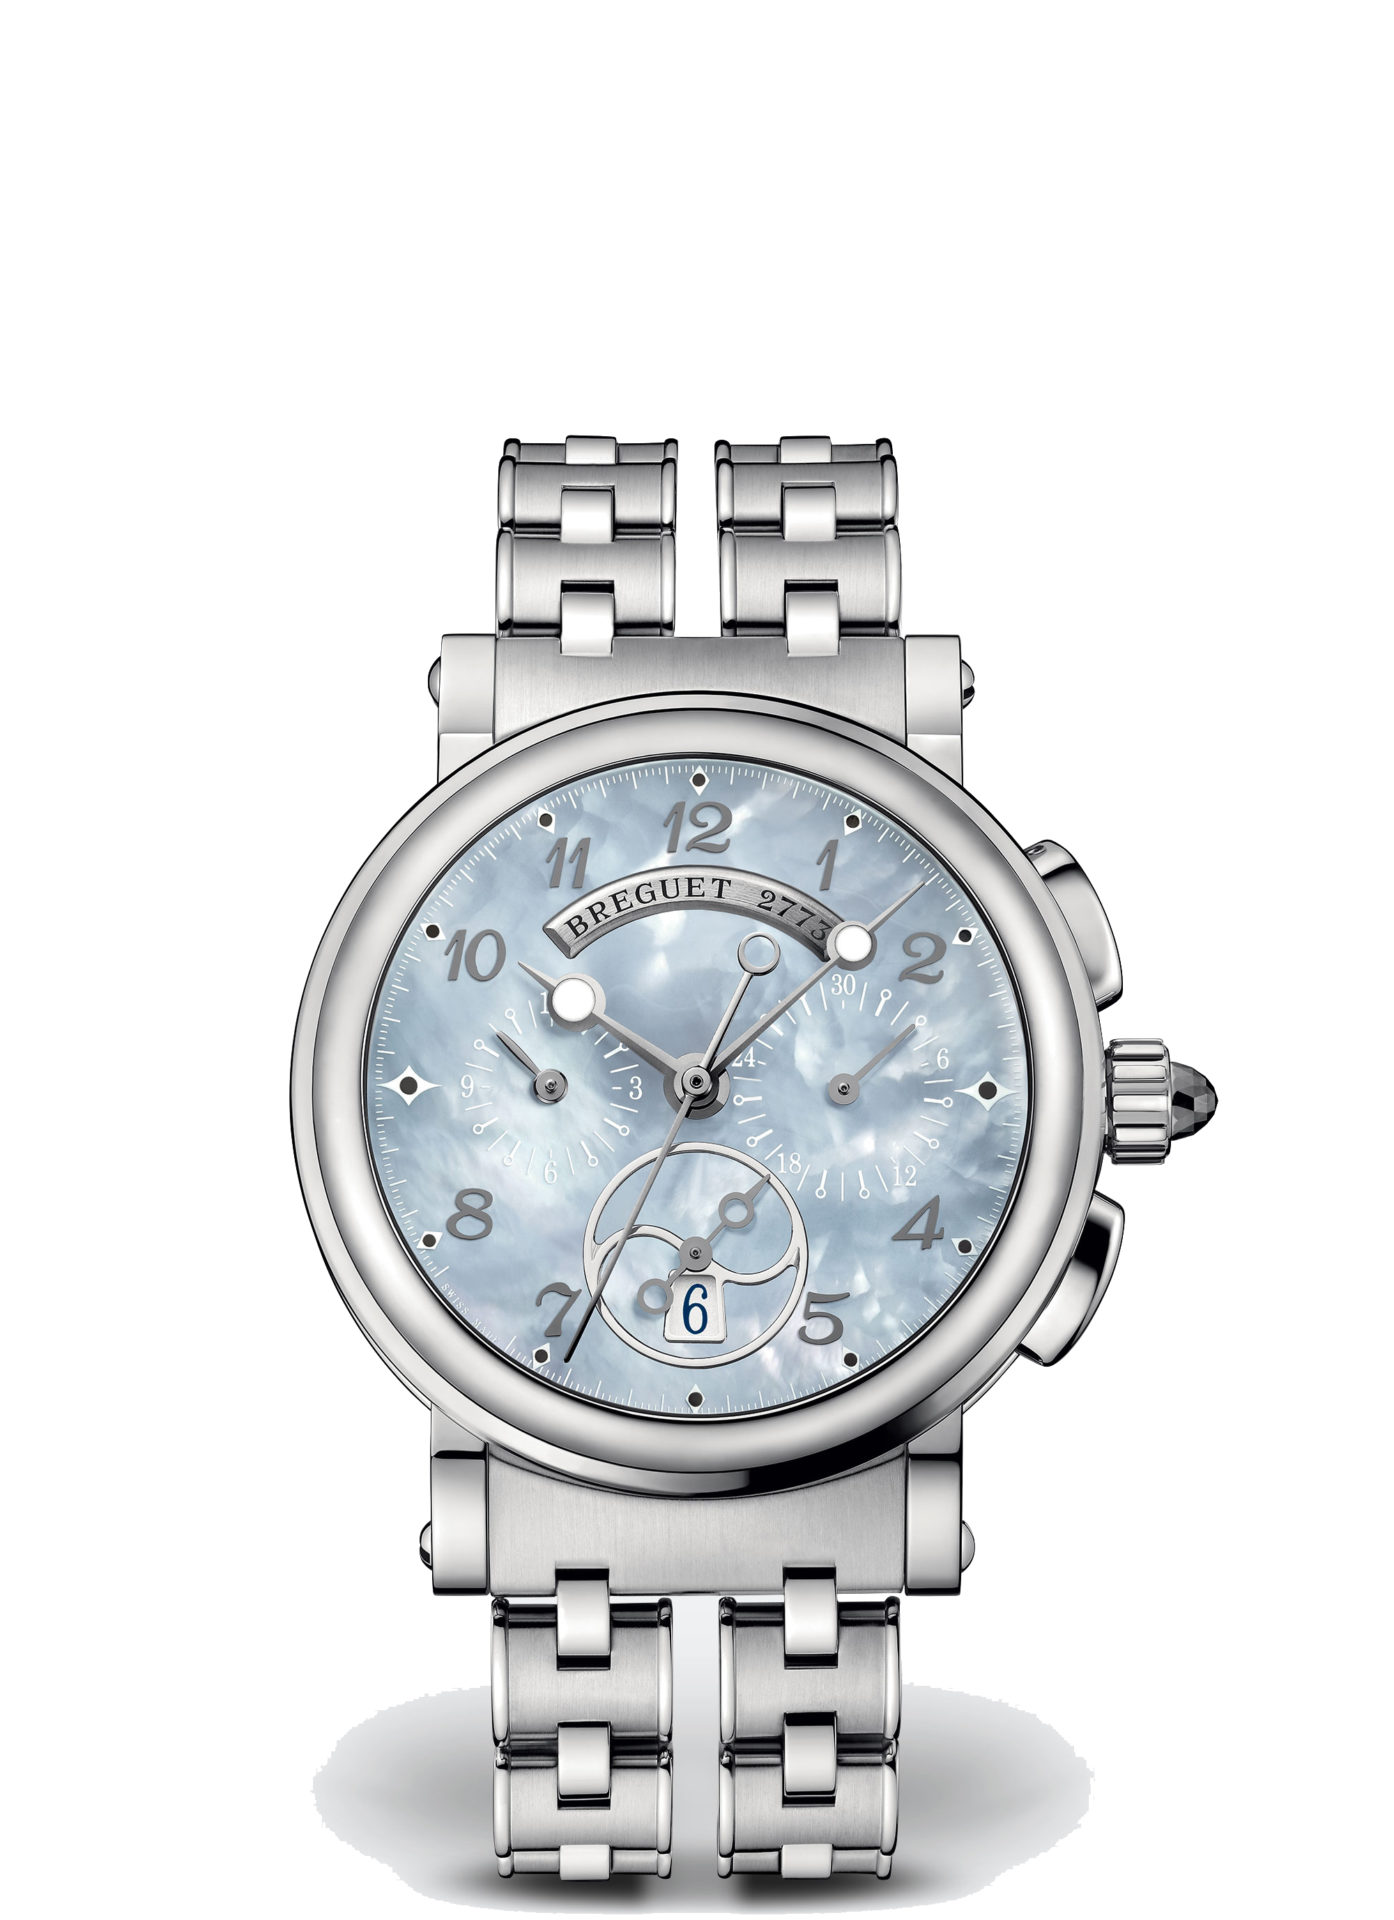 Breguet-La-Marine-8827-Hall-of-Time-8827st-59-sm0